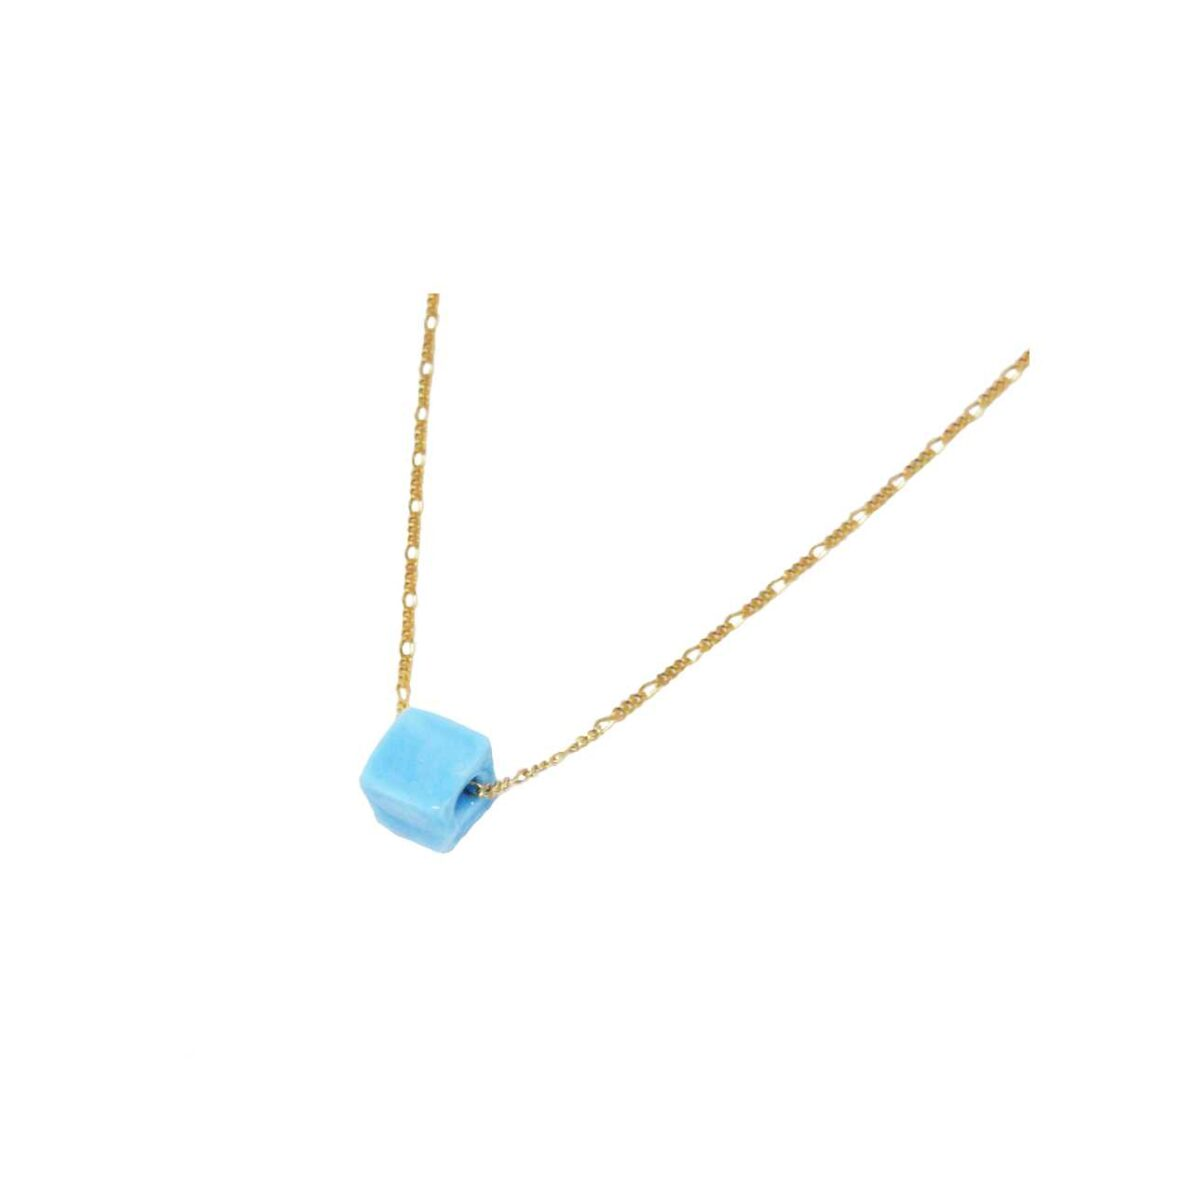 Joy necklace II gold plated